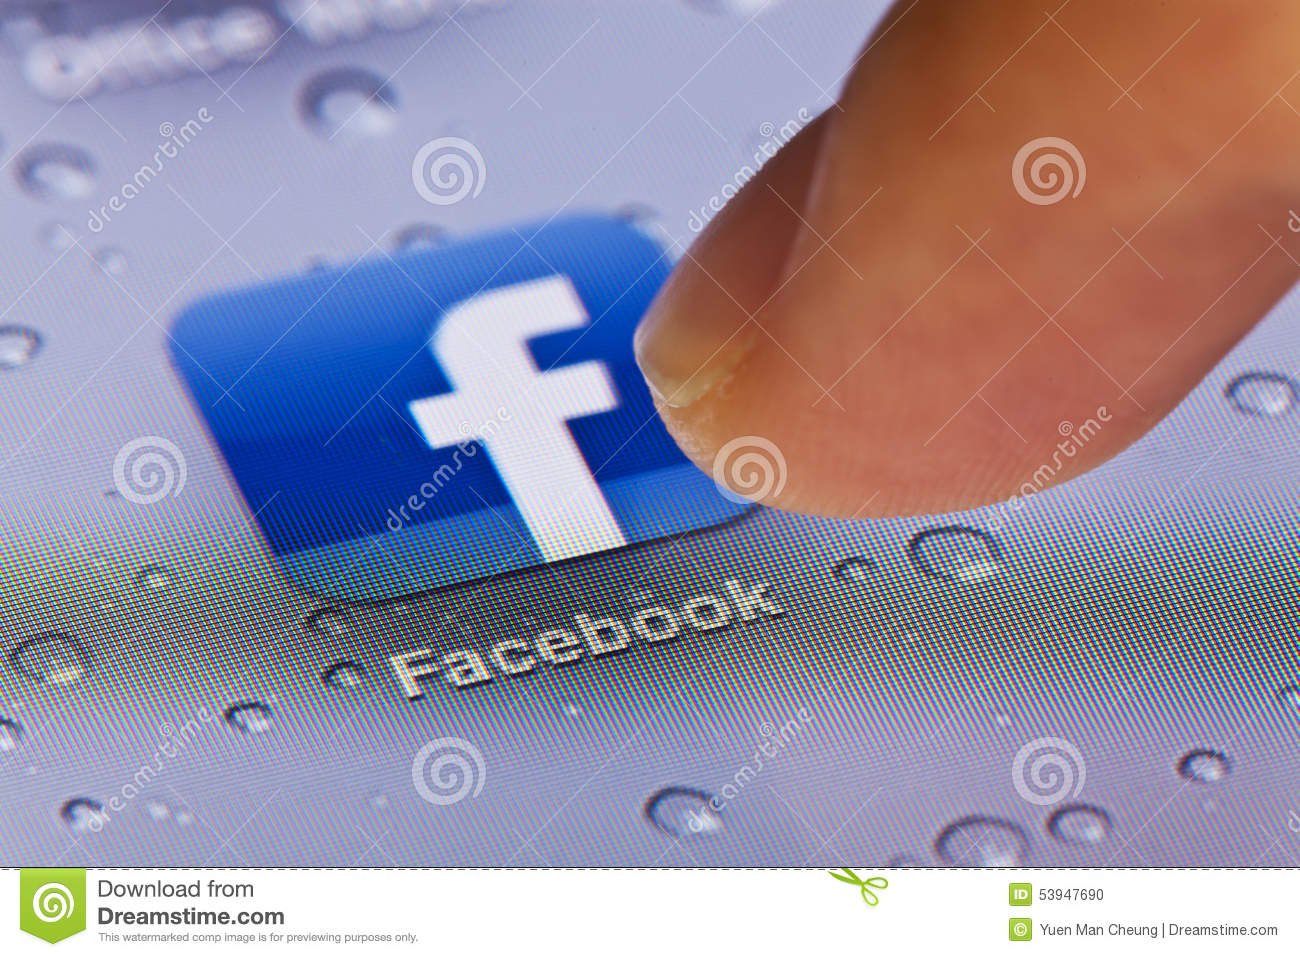 how to use facebook in china ipad